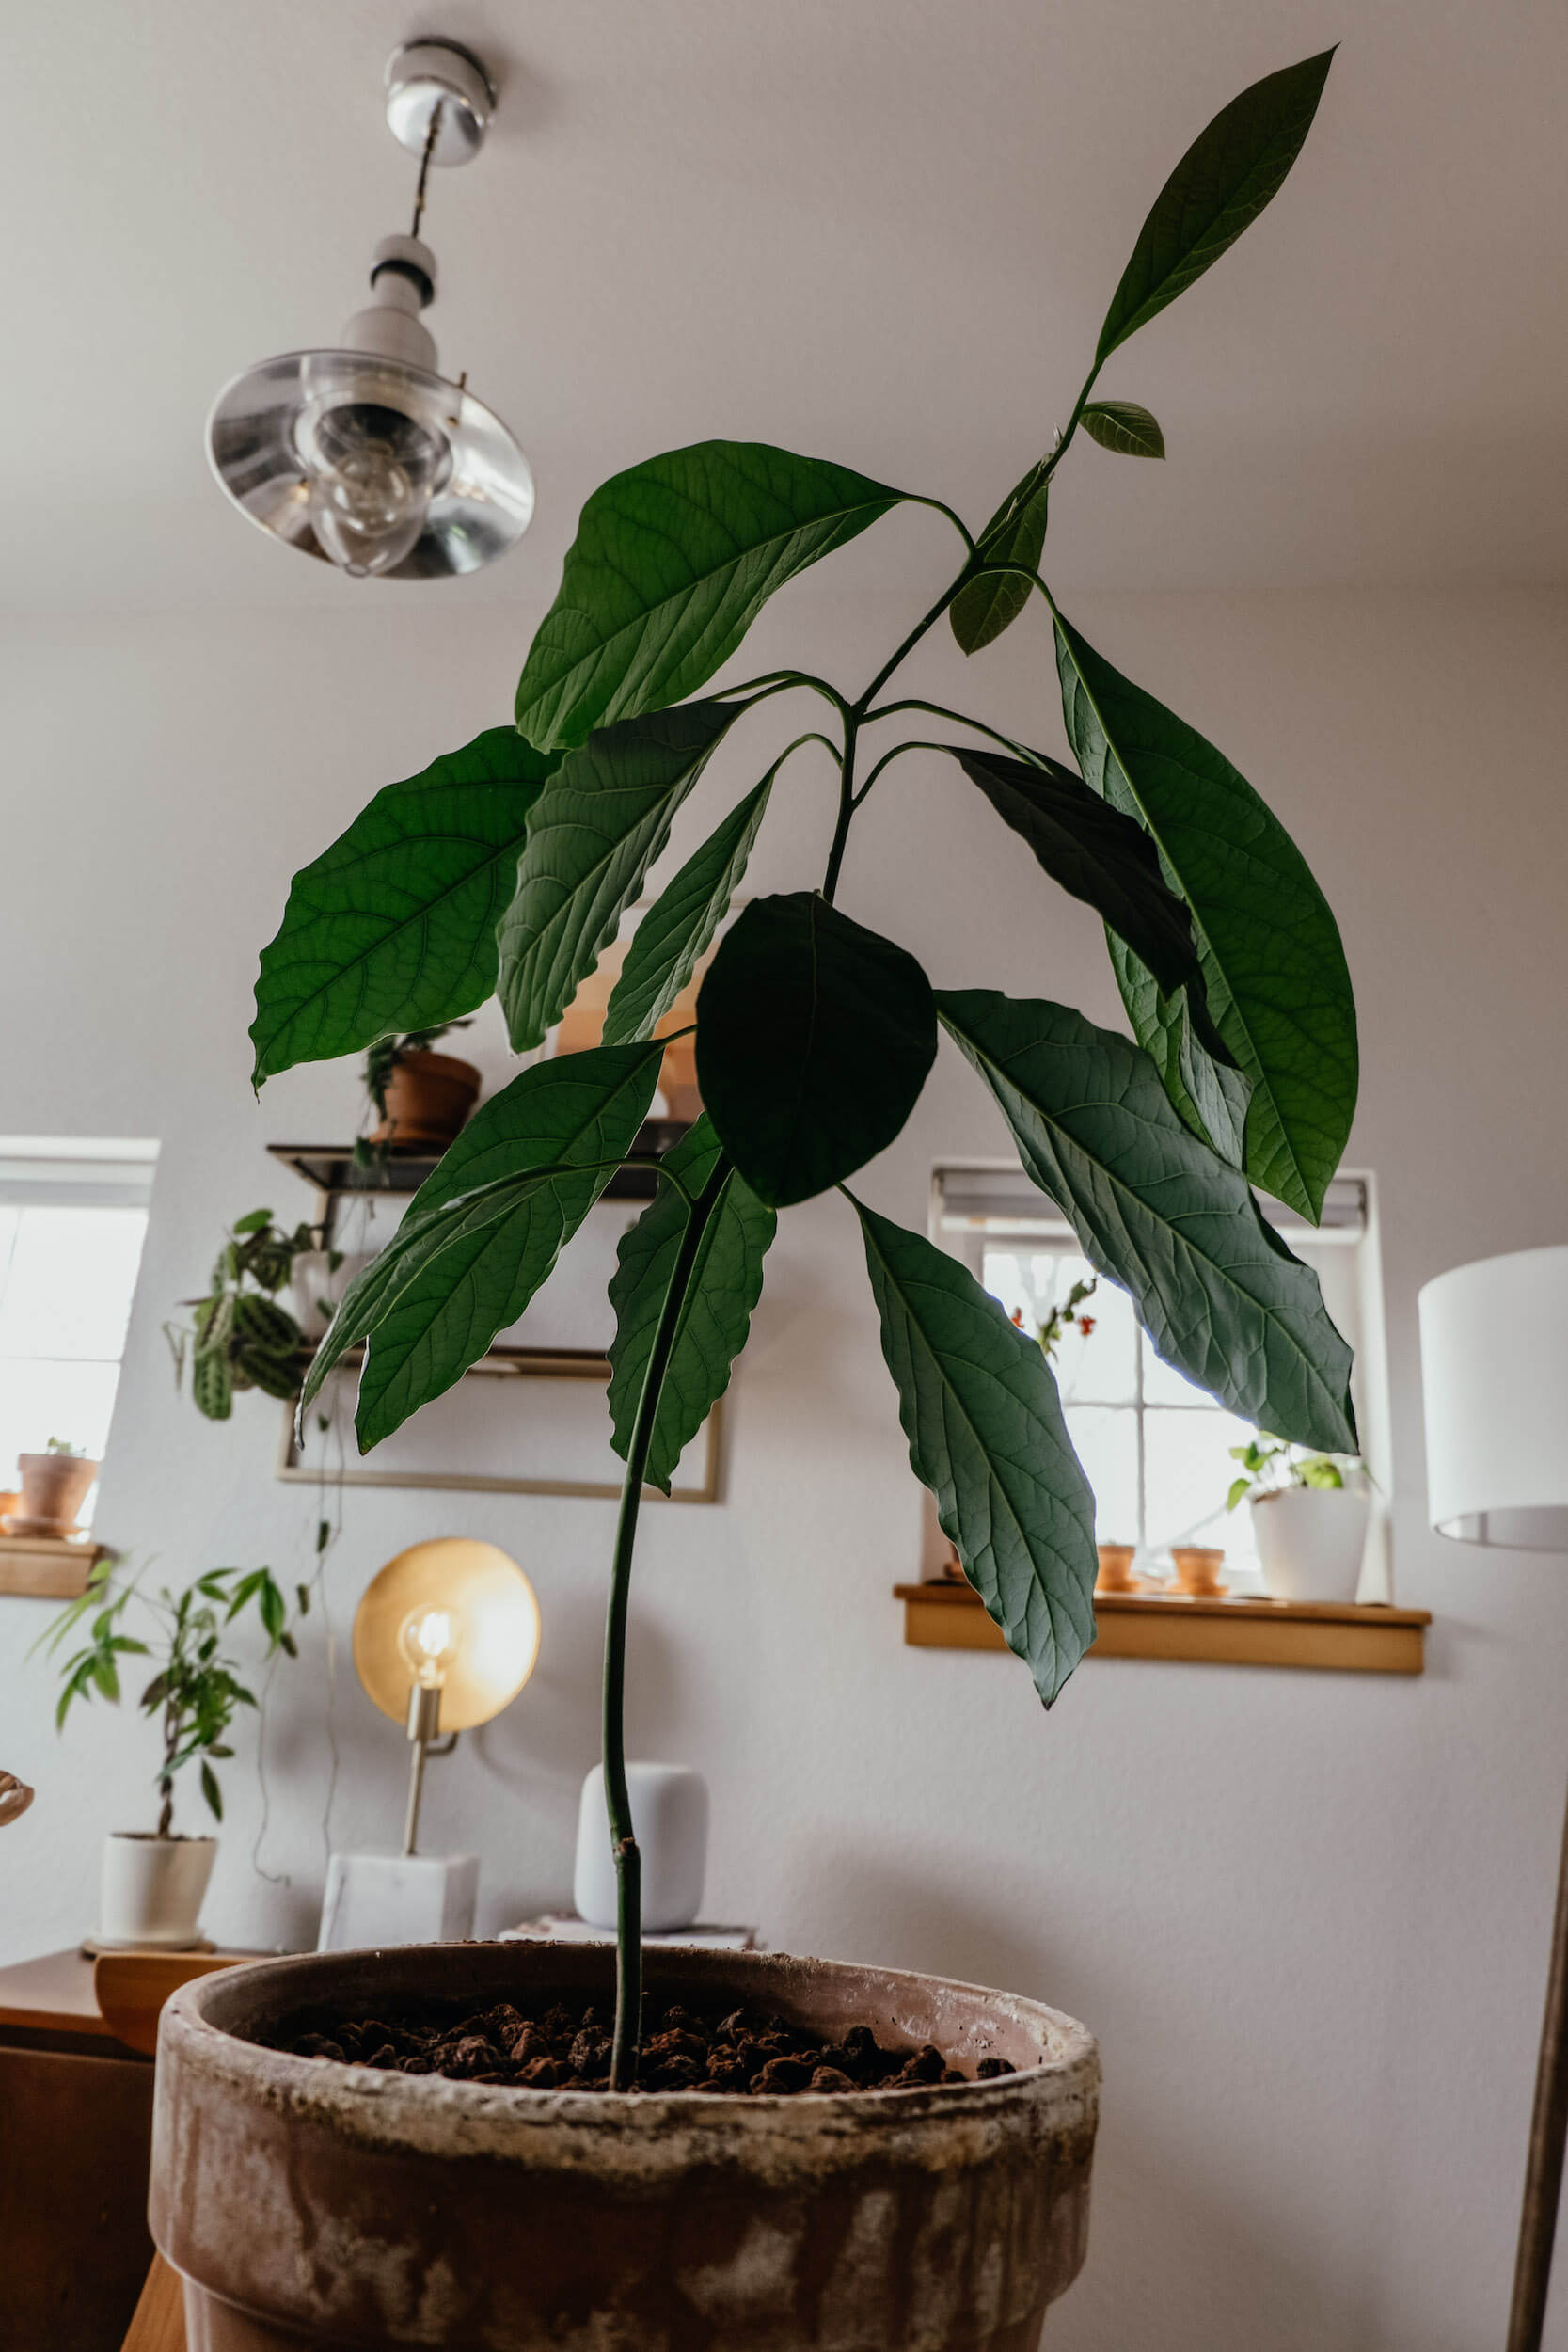 Growing an avocado tree from a seed